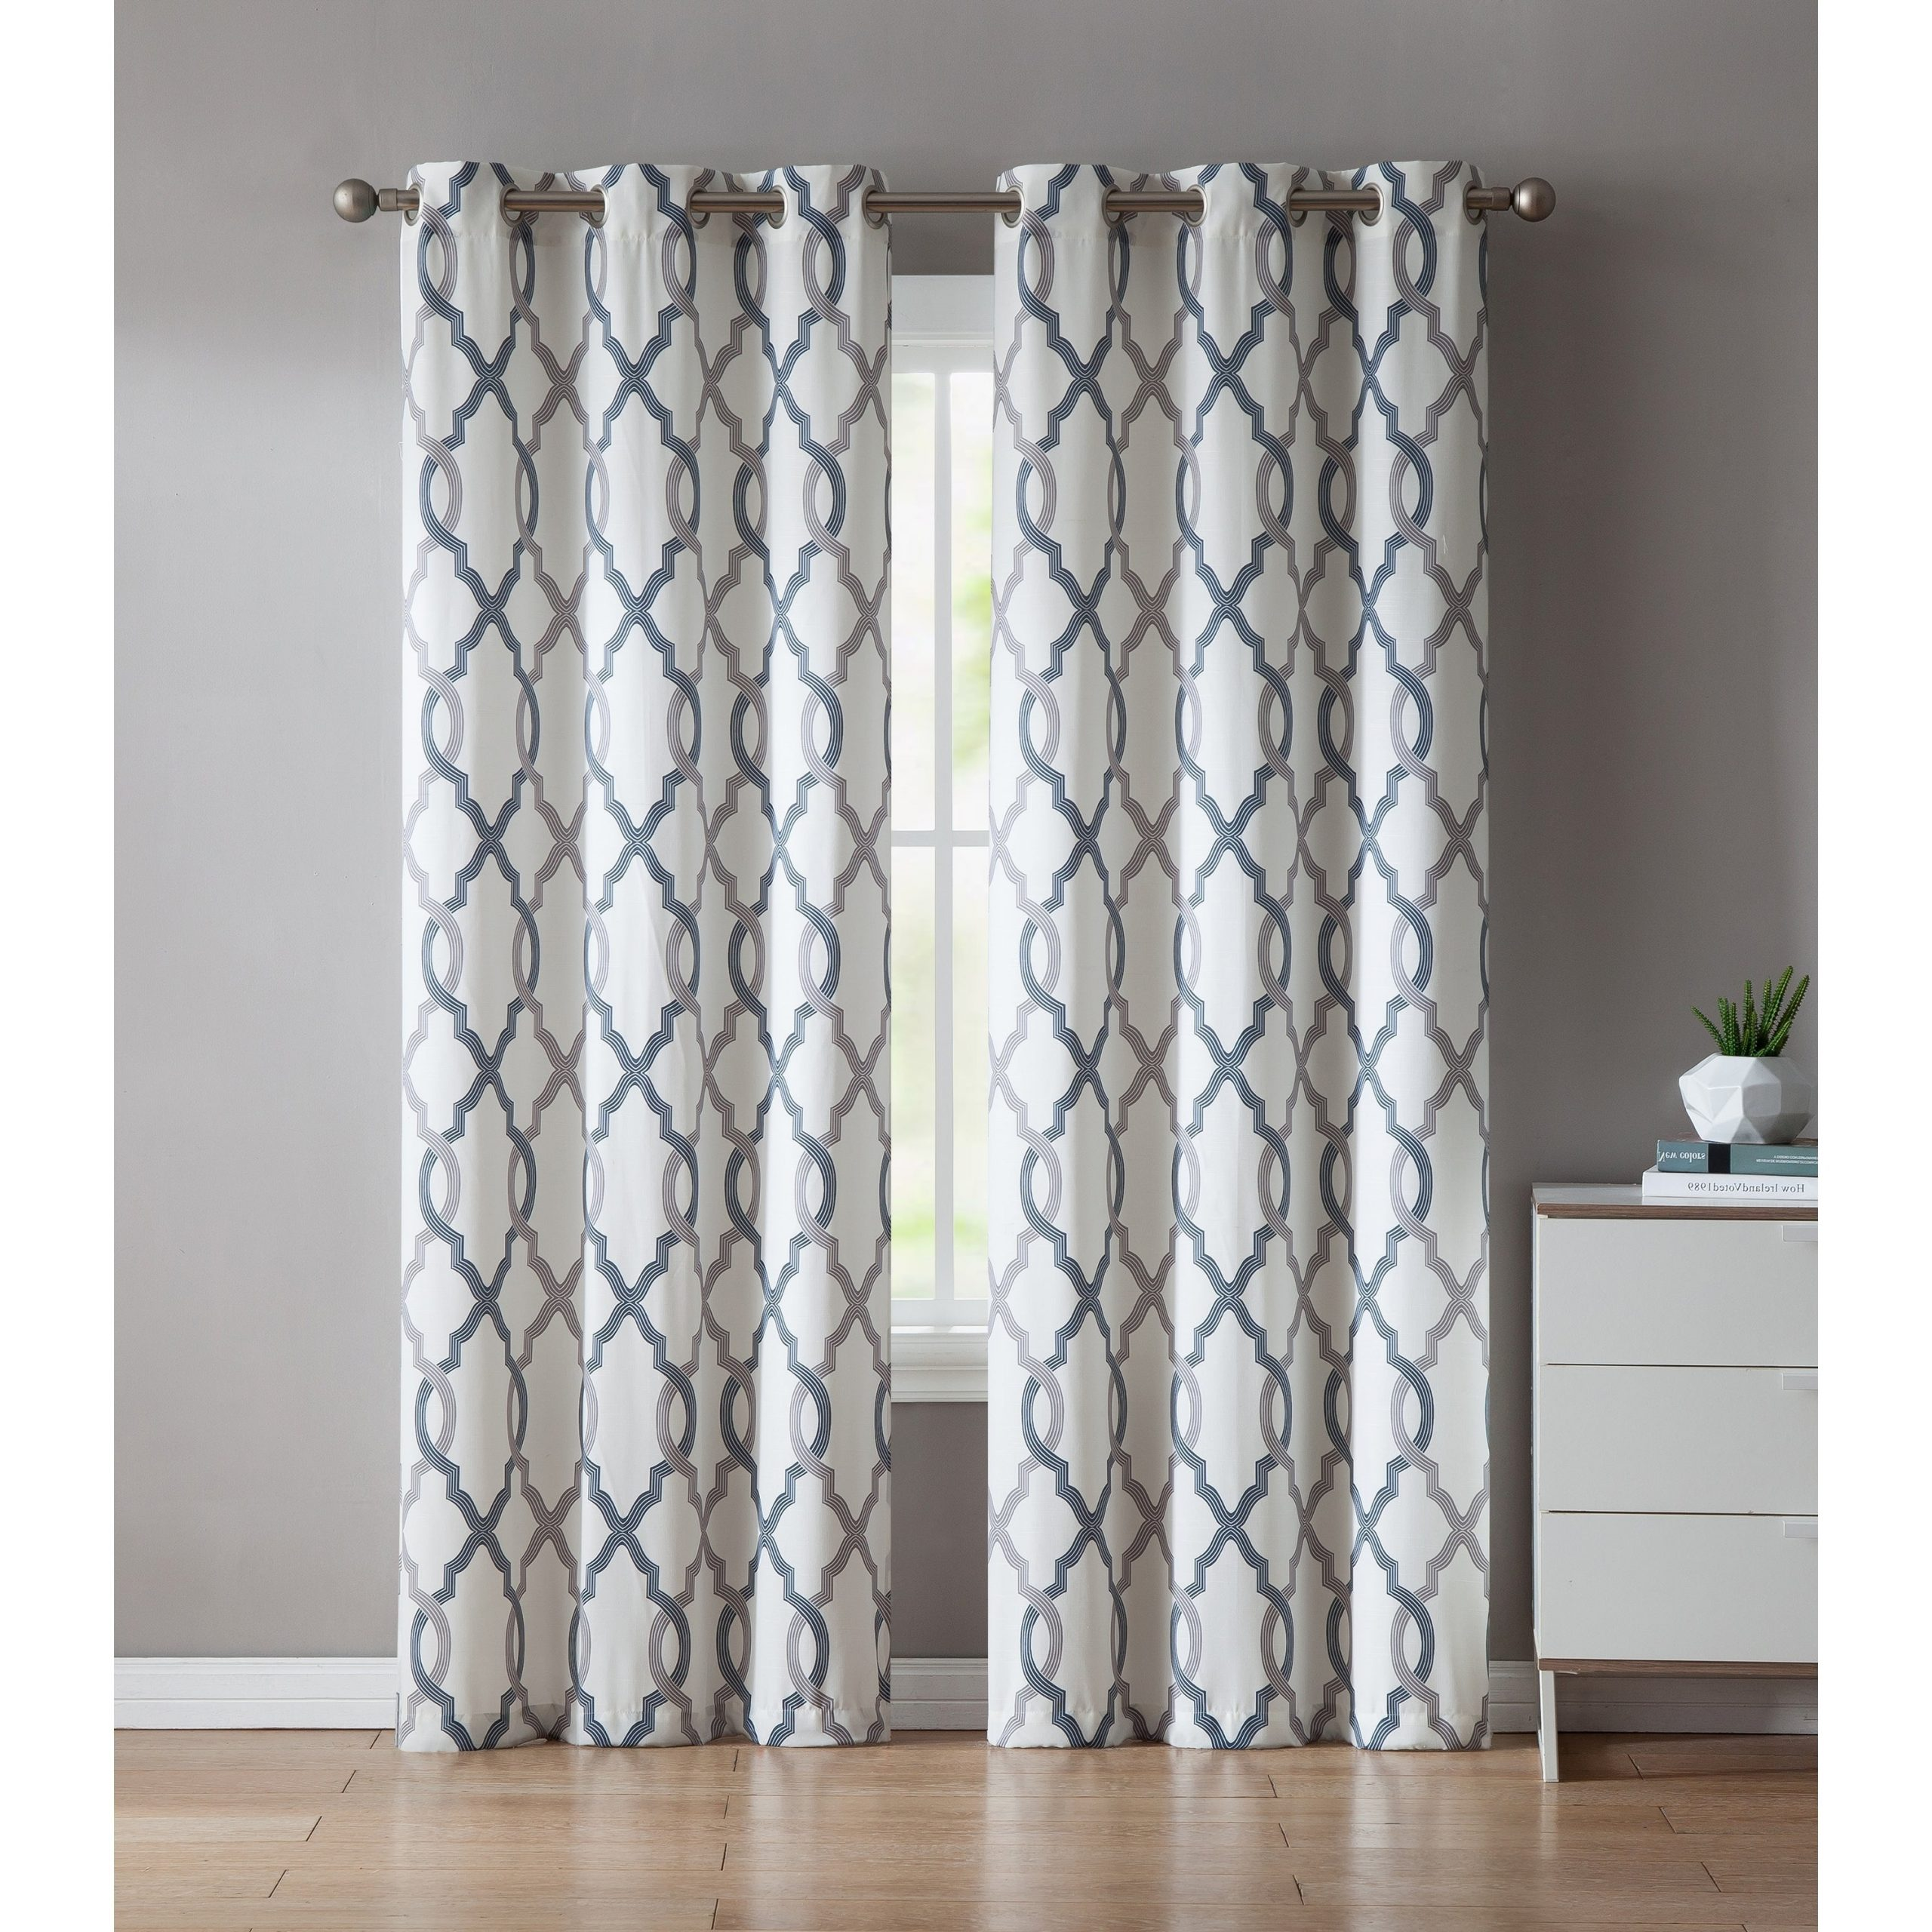 Famous Caldwell Curtain Panel Pairs In Vcny Home Caldwell Curtain Panel Pair (Gallery 1 of 20)